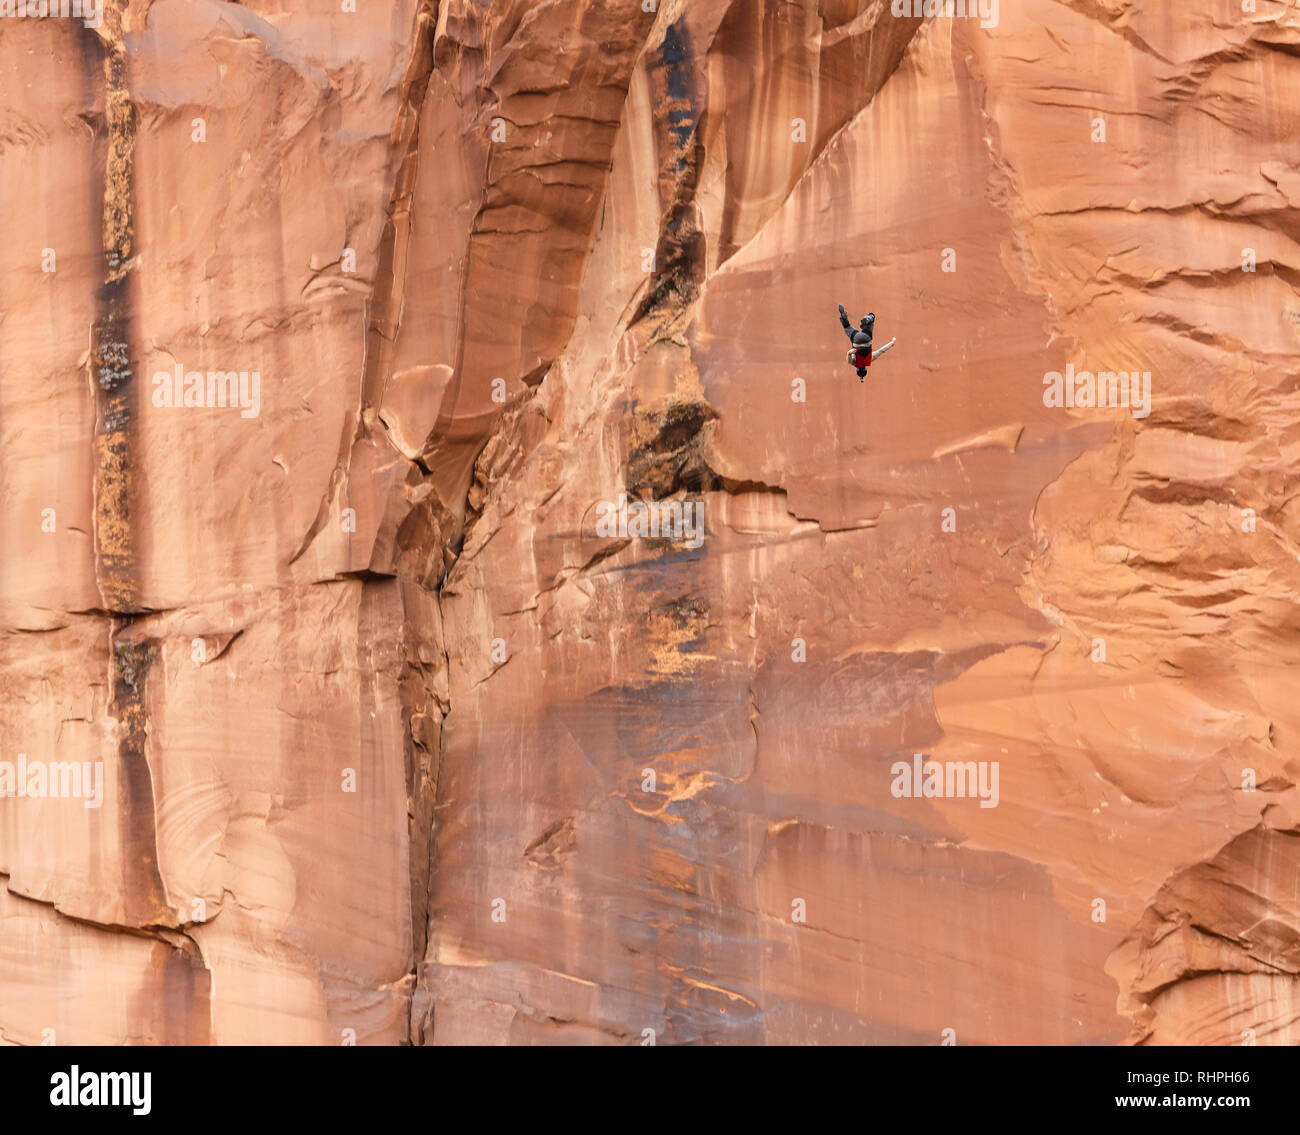 Aaron Stuyvenberg jumps from an exit point called Tombstone near Moab Utah - Stock Image